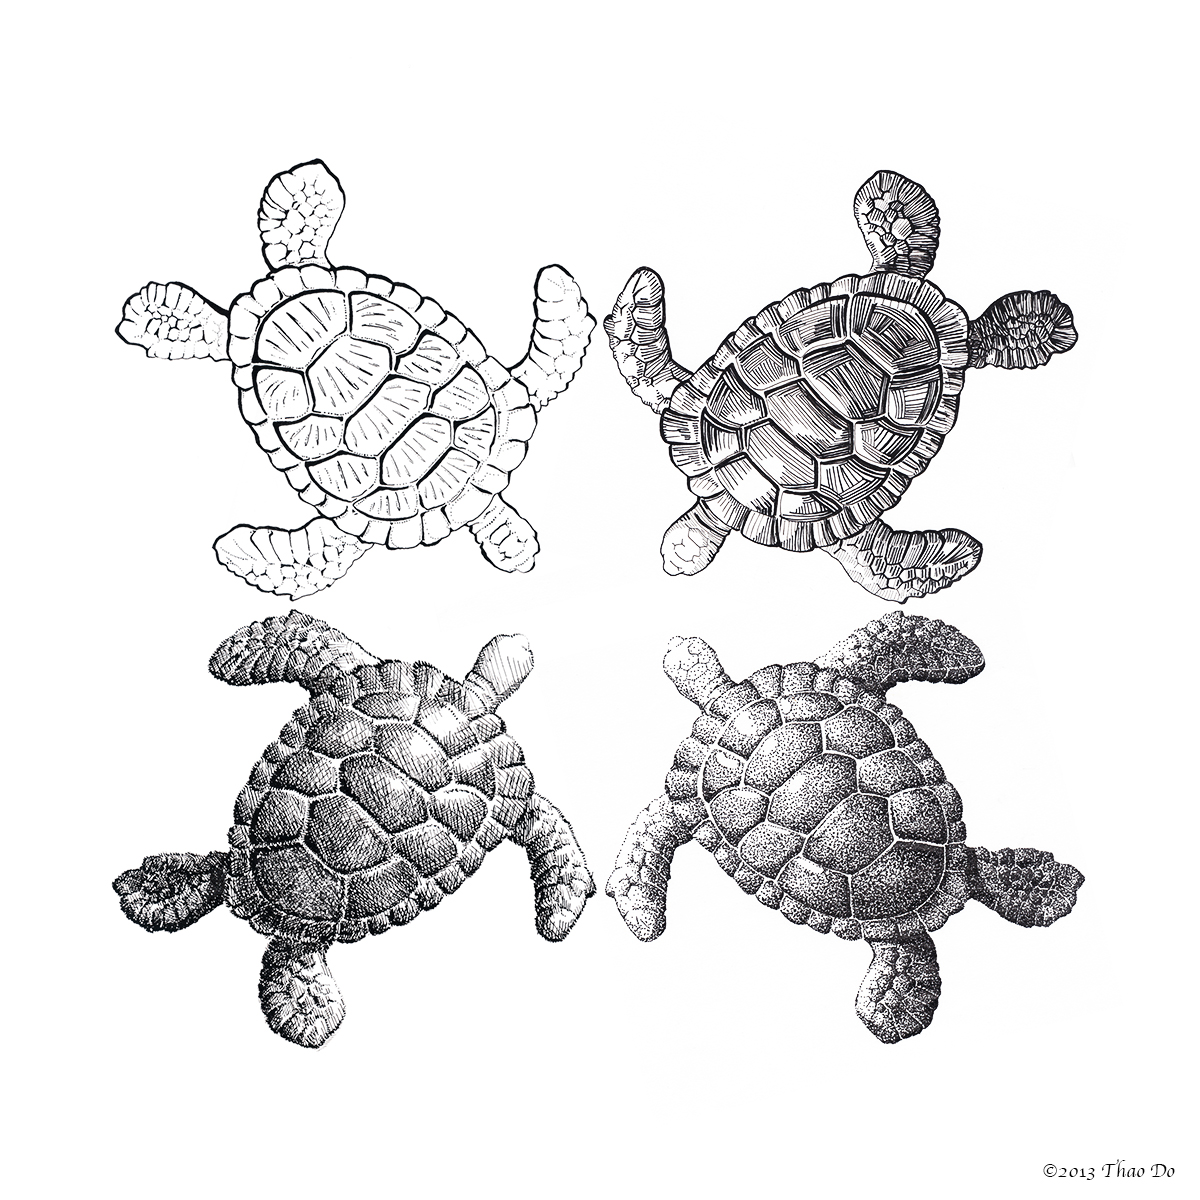 Turtle Together